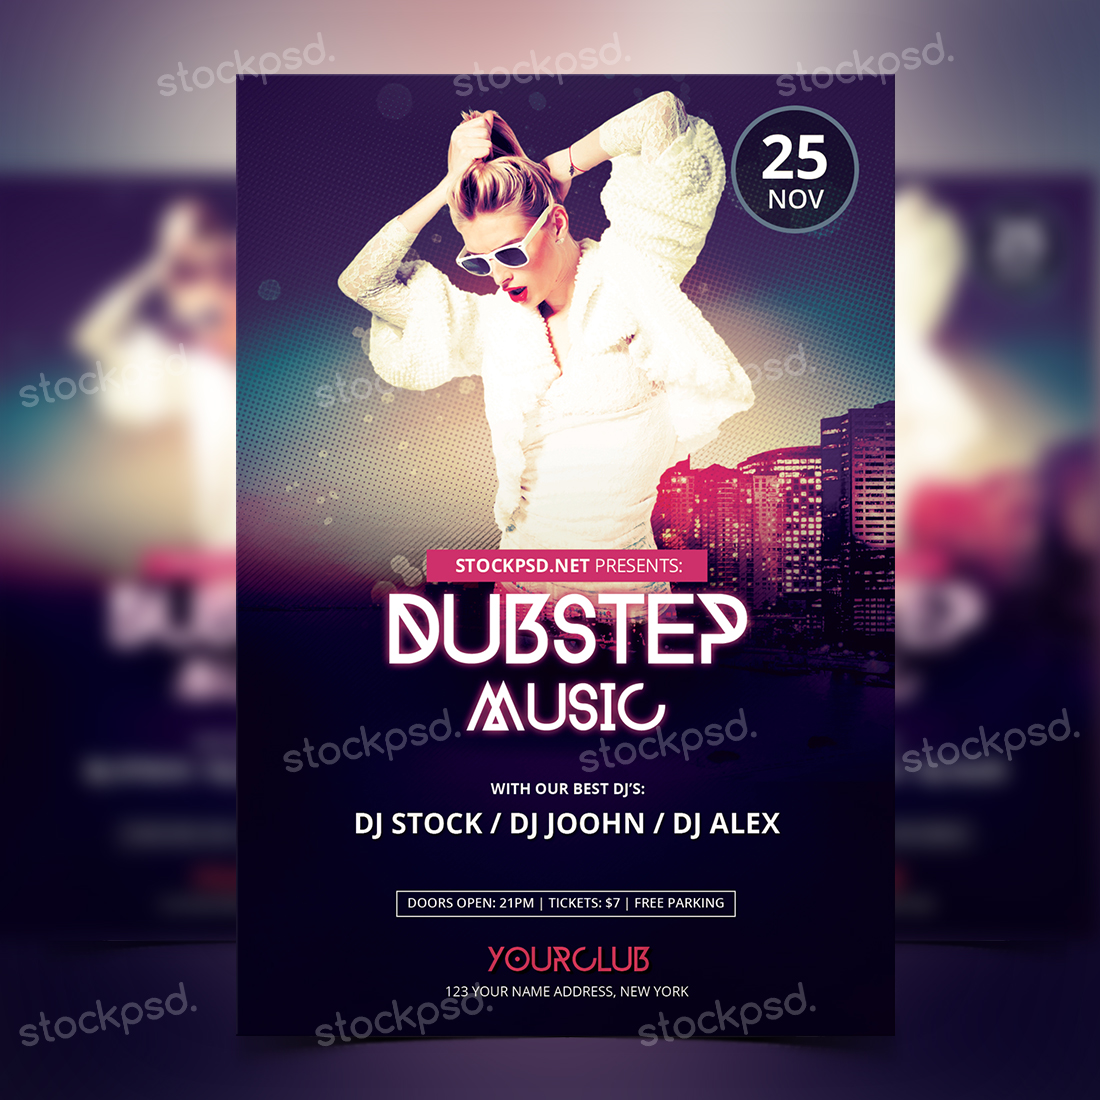 dubstep music free psd party flyer stockpsd